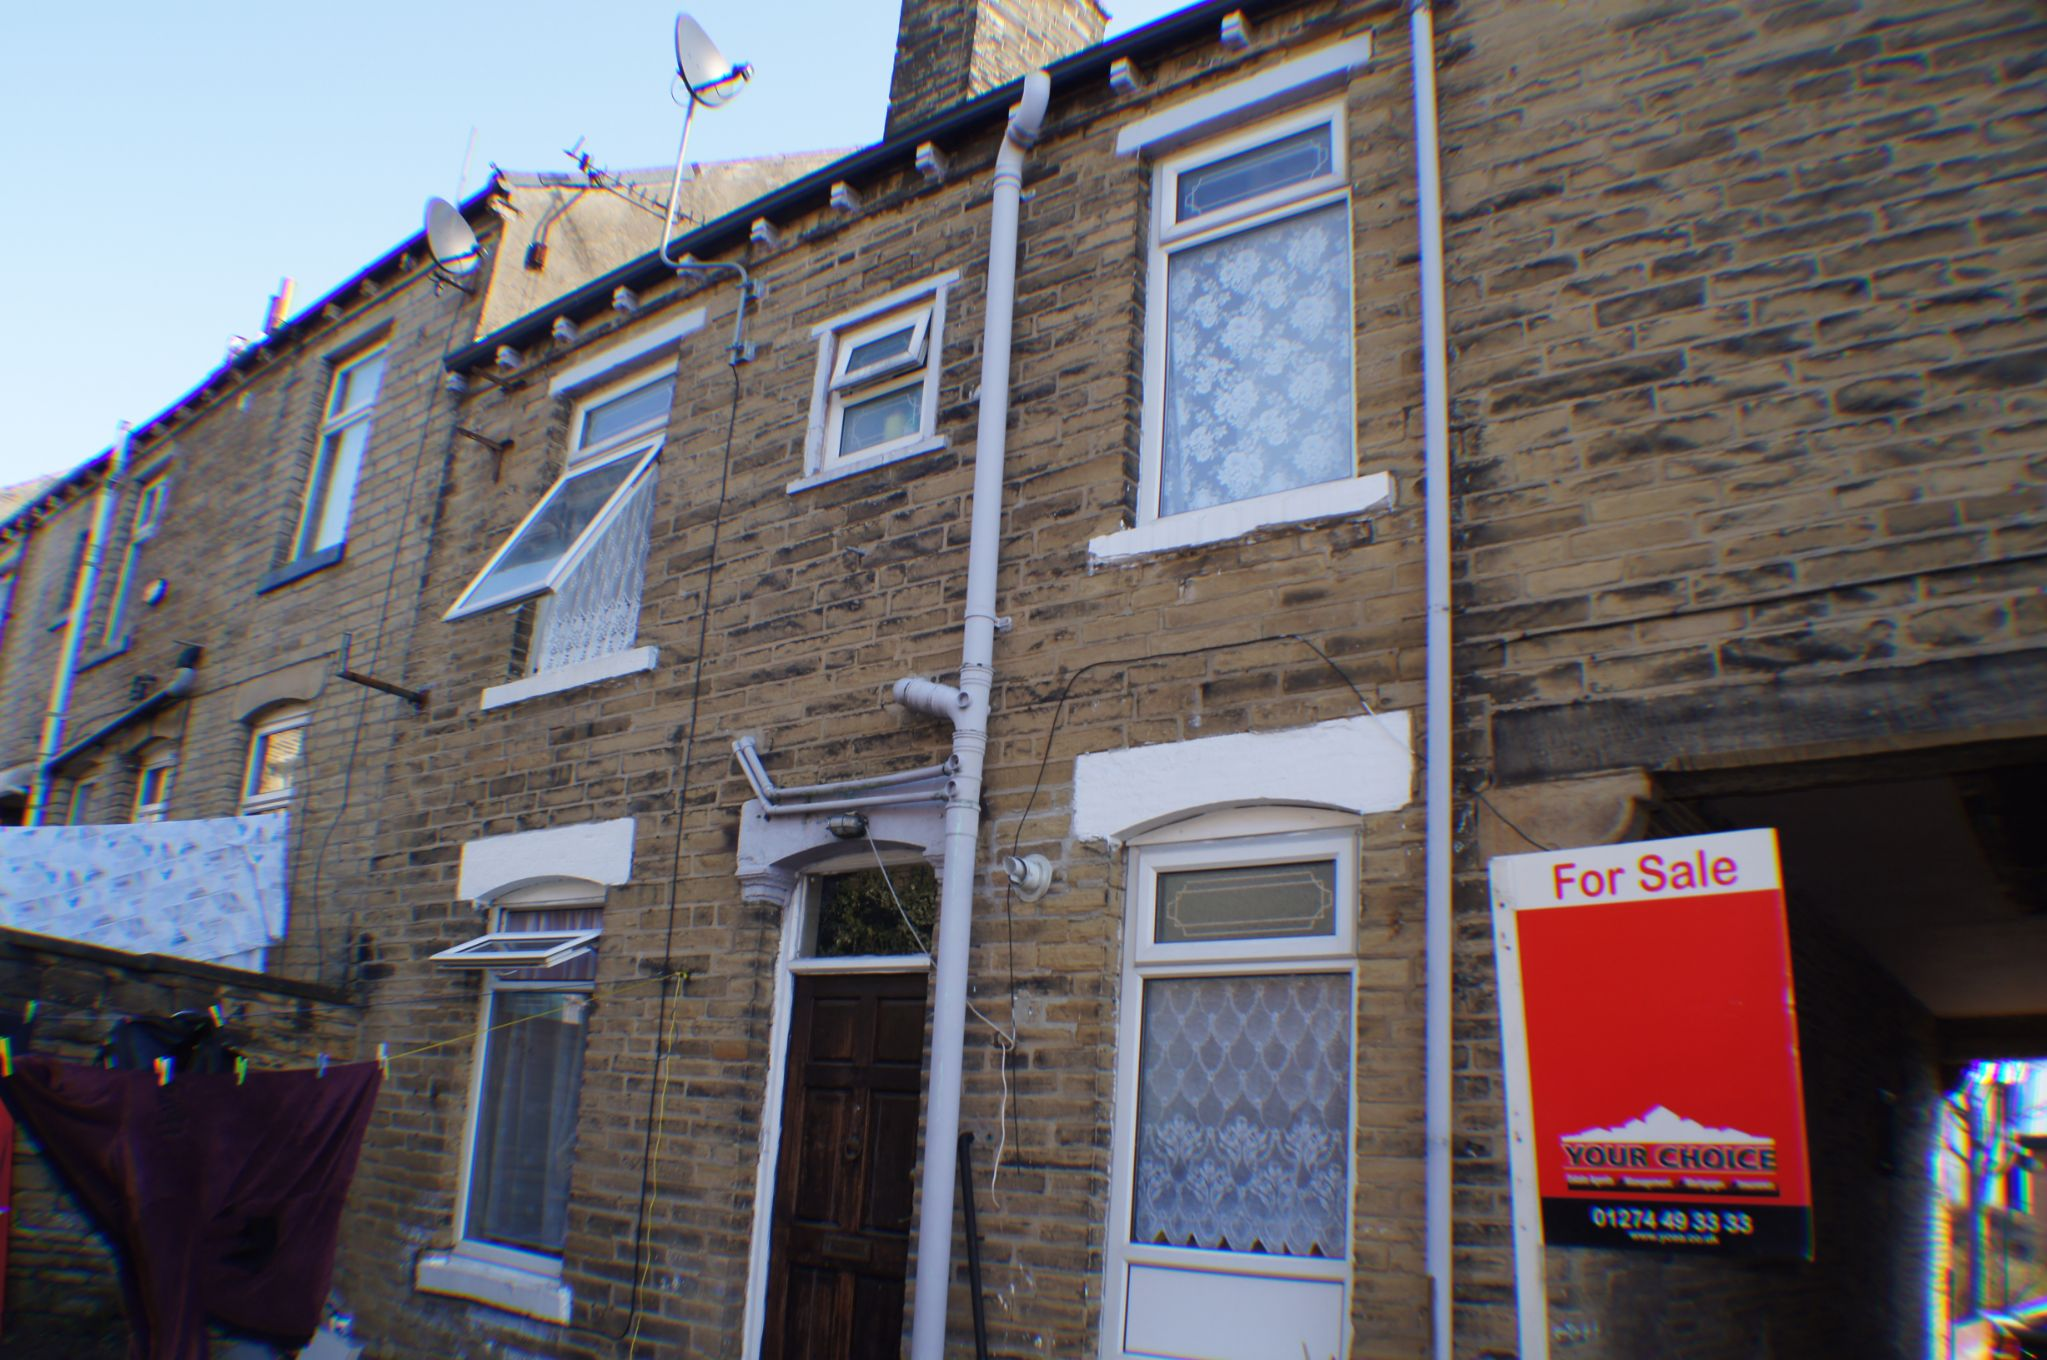 2 bedroom mid terraced house Sold in Bradford - Photograph 6.